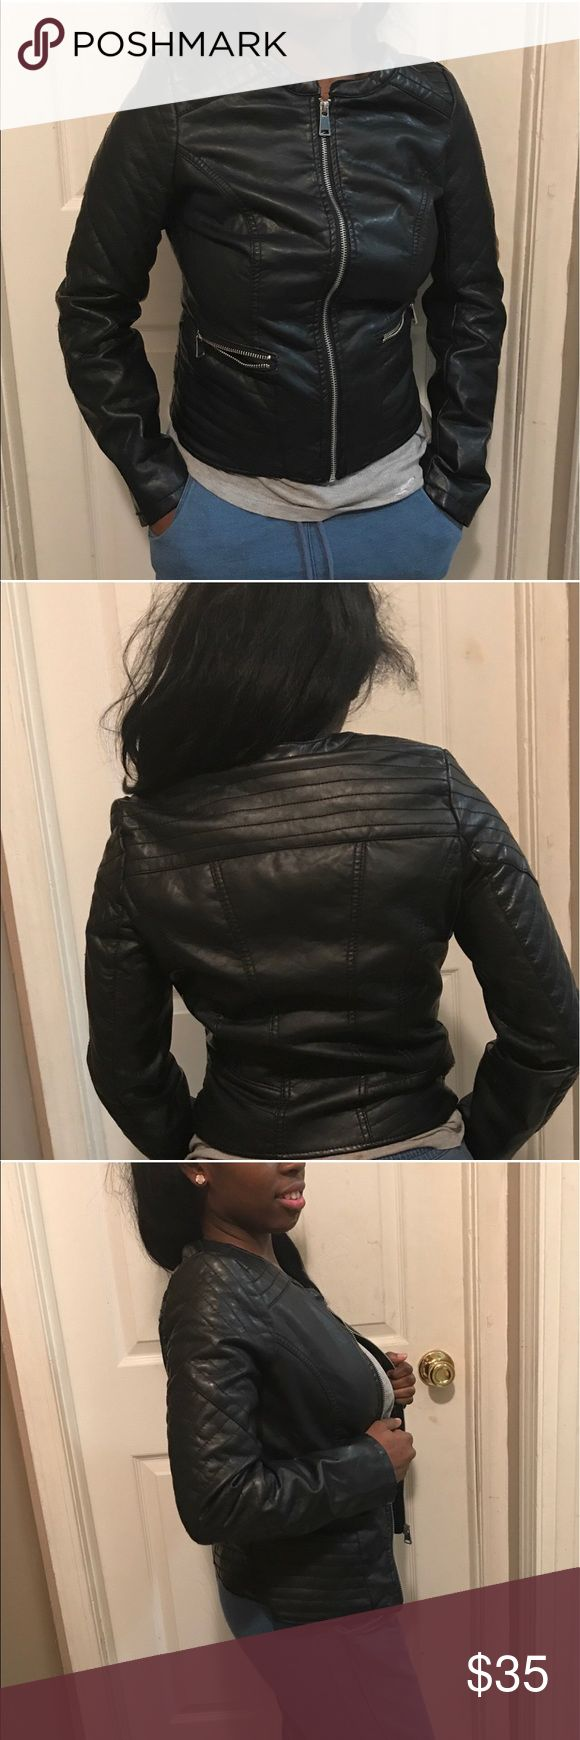 Ladies biker jacket Ladies just this beauty.. this is a sweet Charlotte Russe faux leather biker jacket, love this Jacket would  ❤️ to keep it but can no longer fit me. Worn only twice...  Color-black #bikerjacket #ladies #jacket Charlotte Russe Jackets & Coats